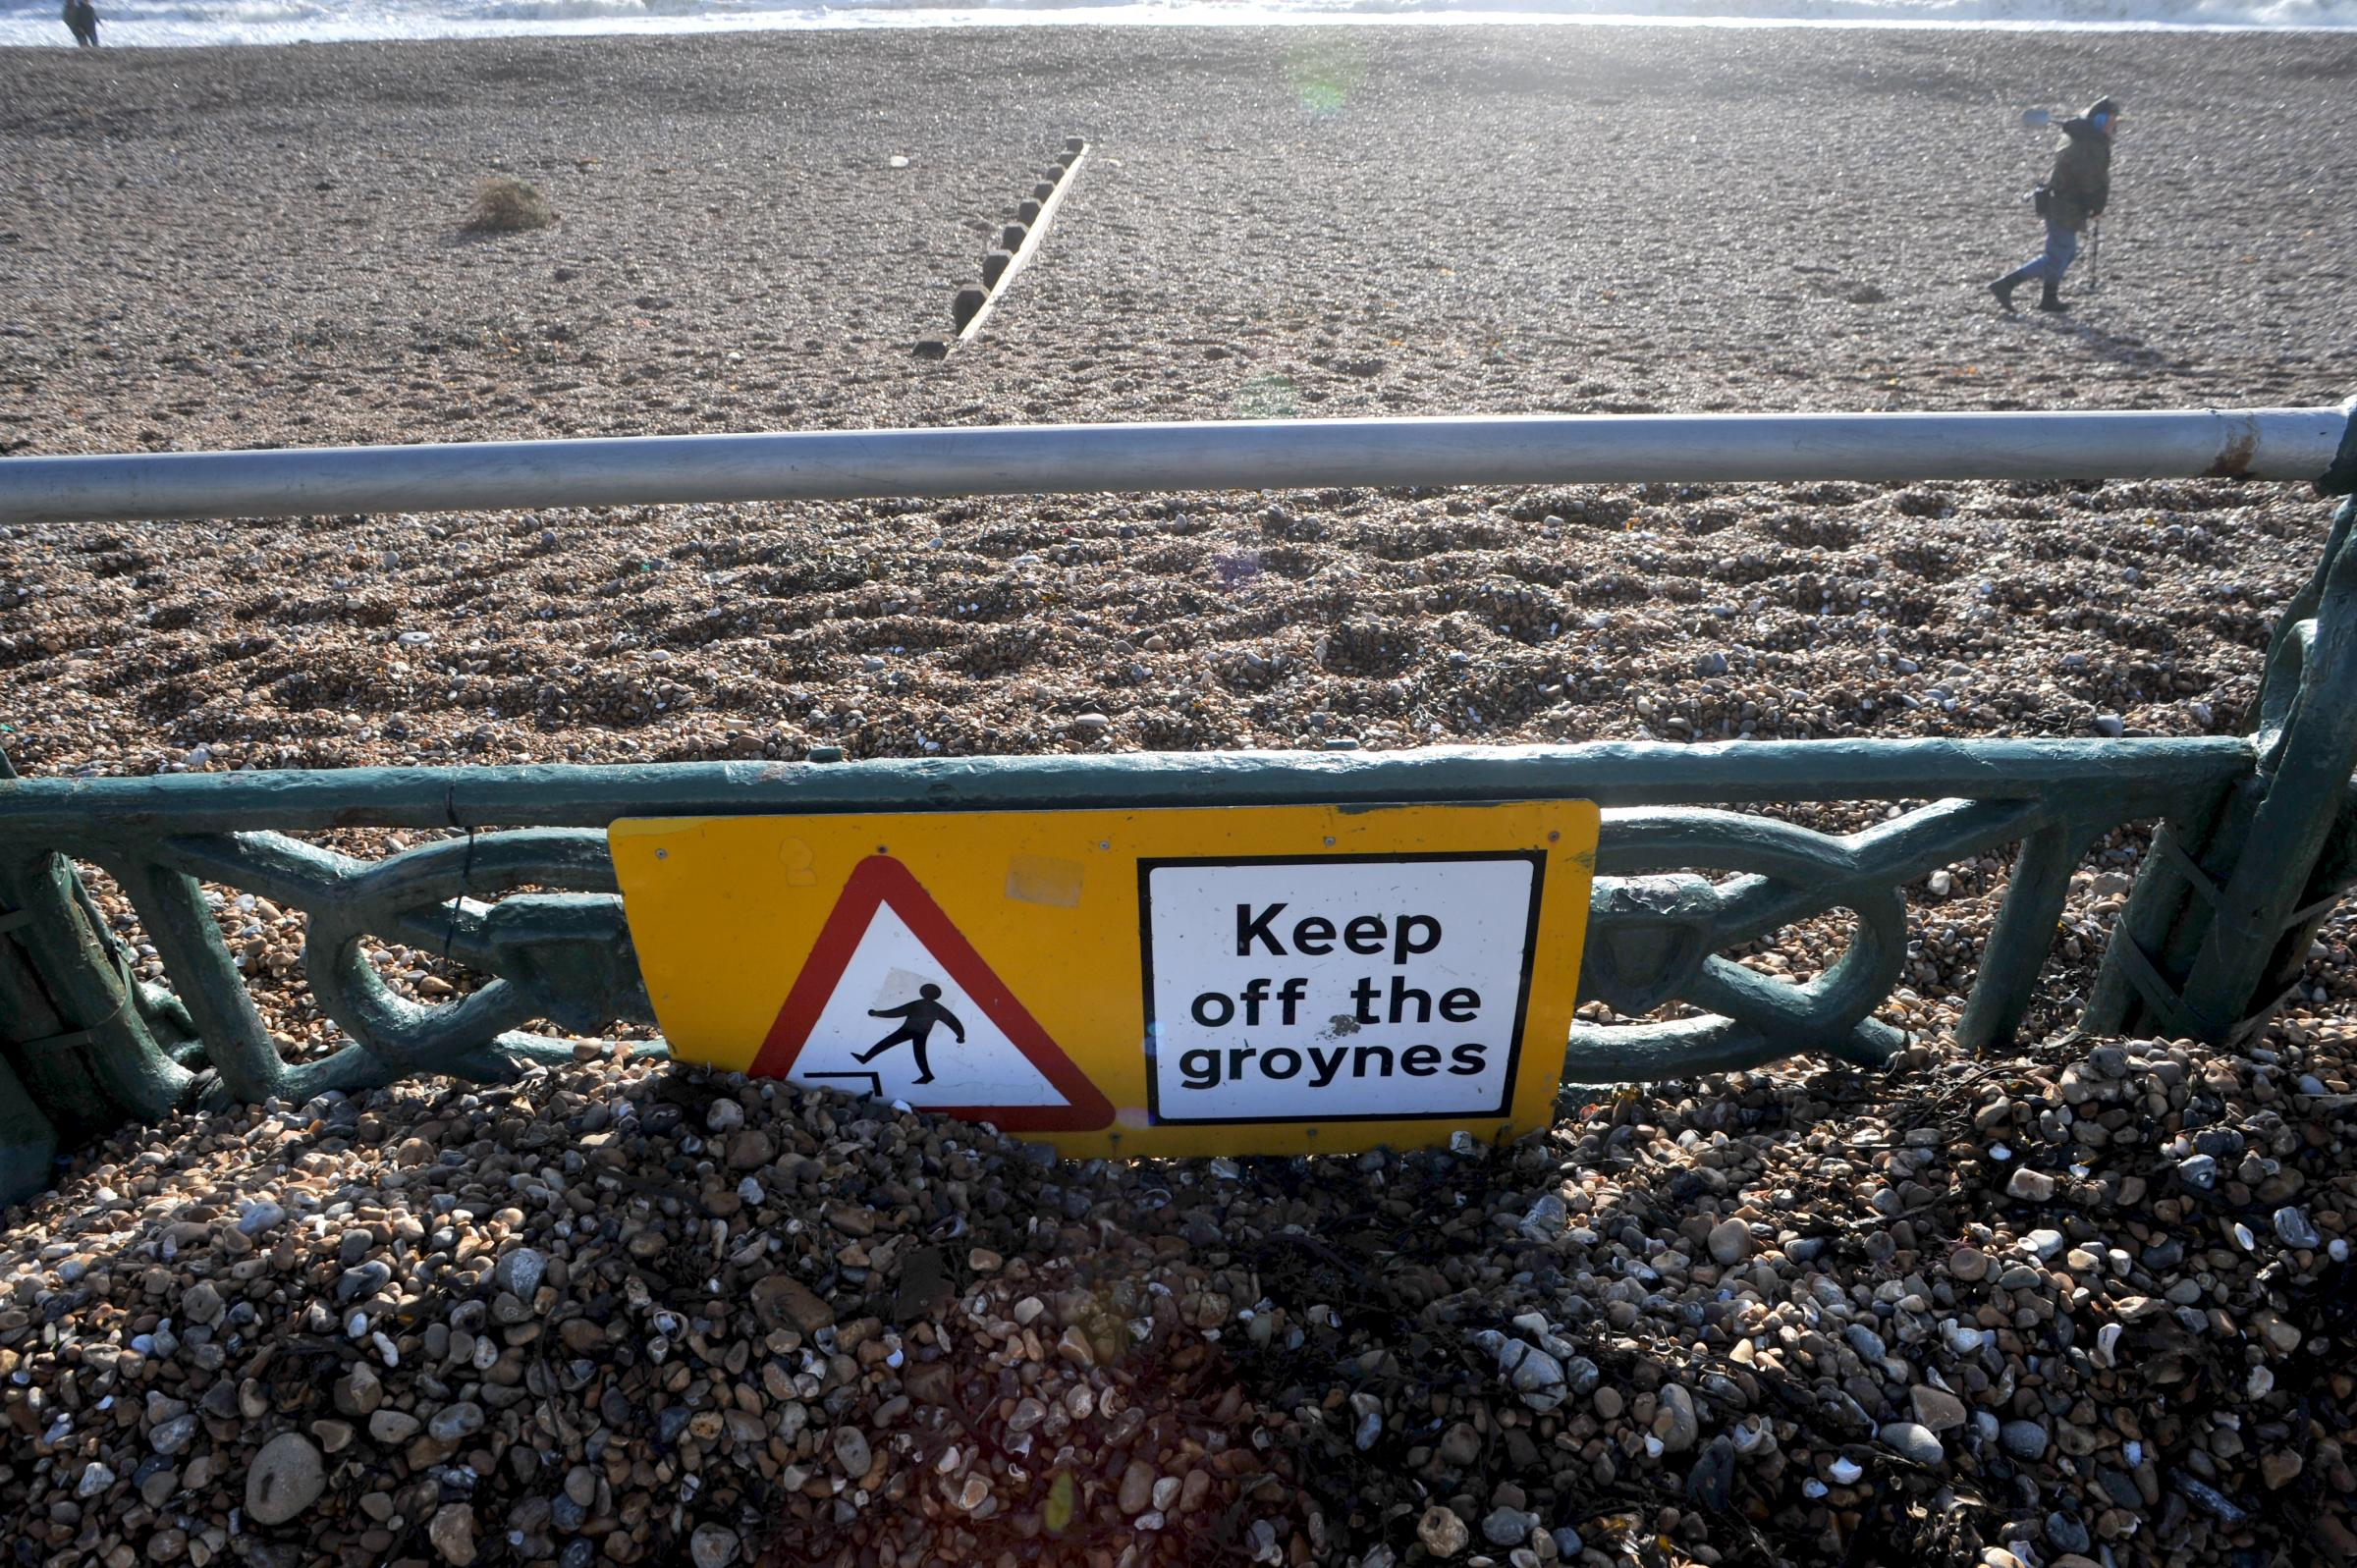 Sussex coast clear-up continues after storm damage but could be weeks before back to normal